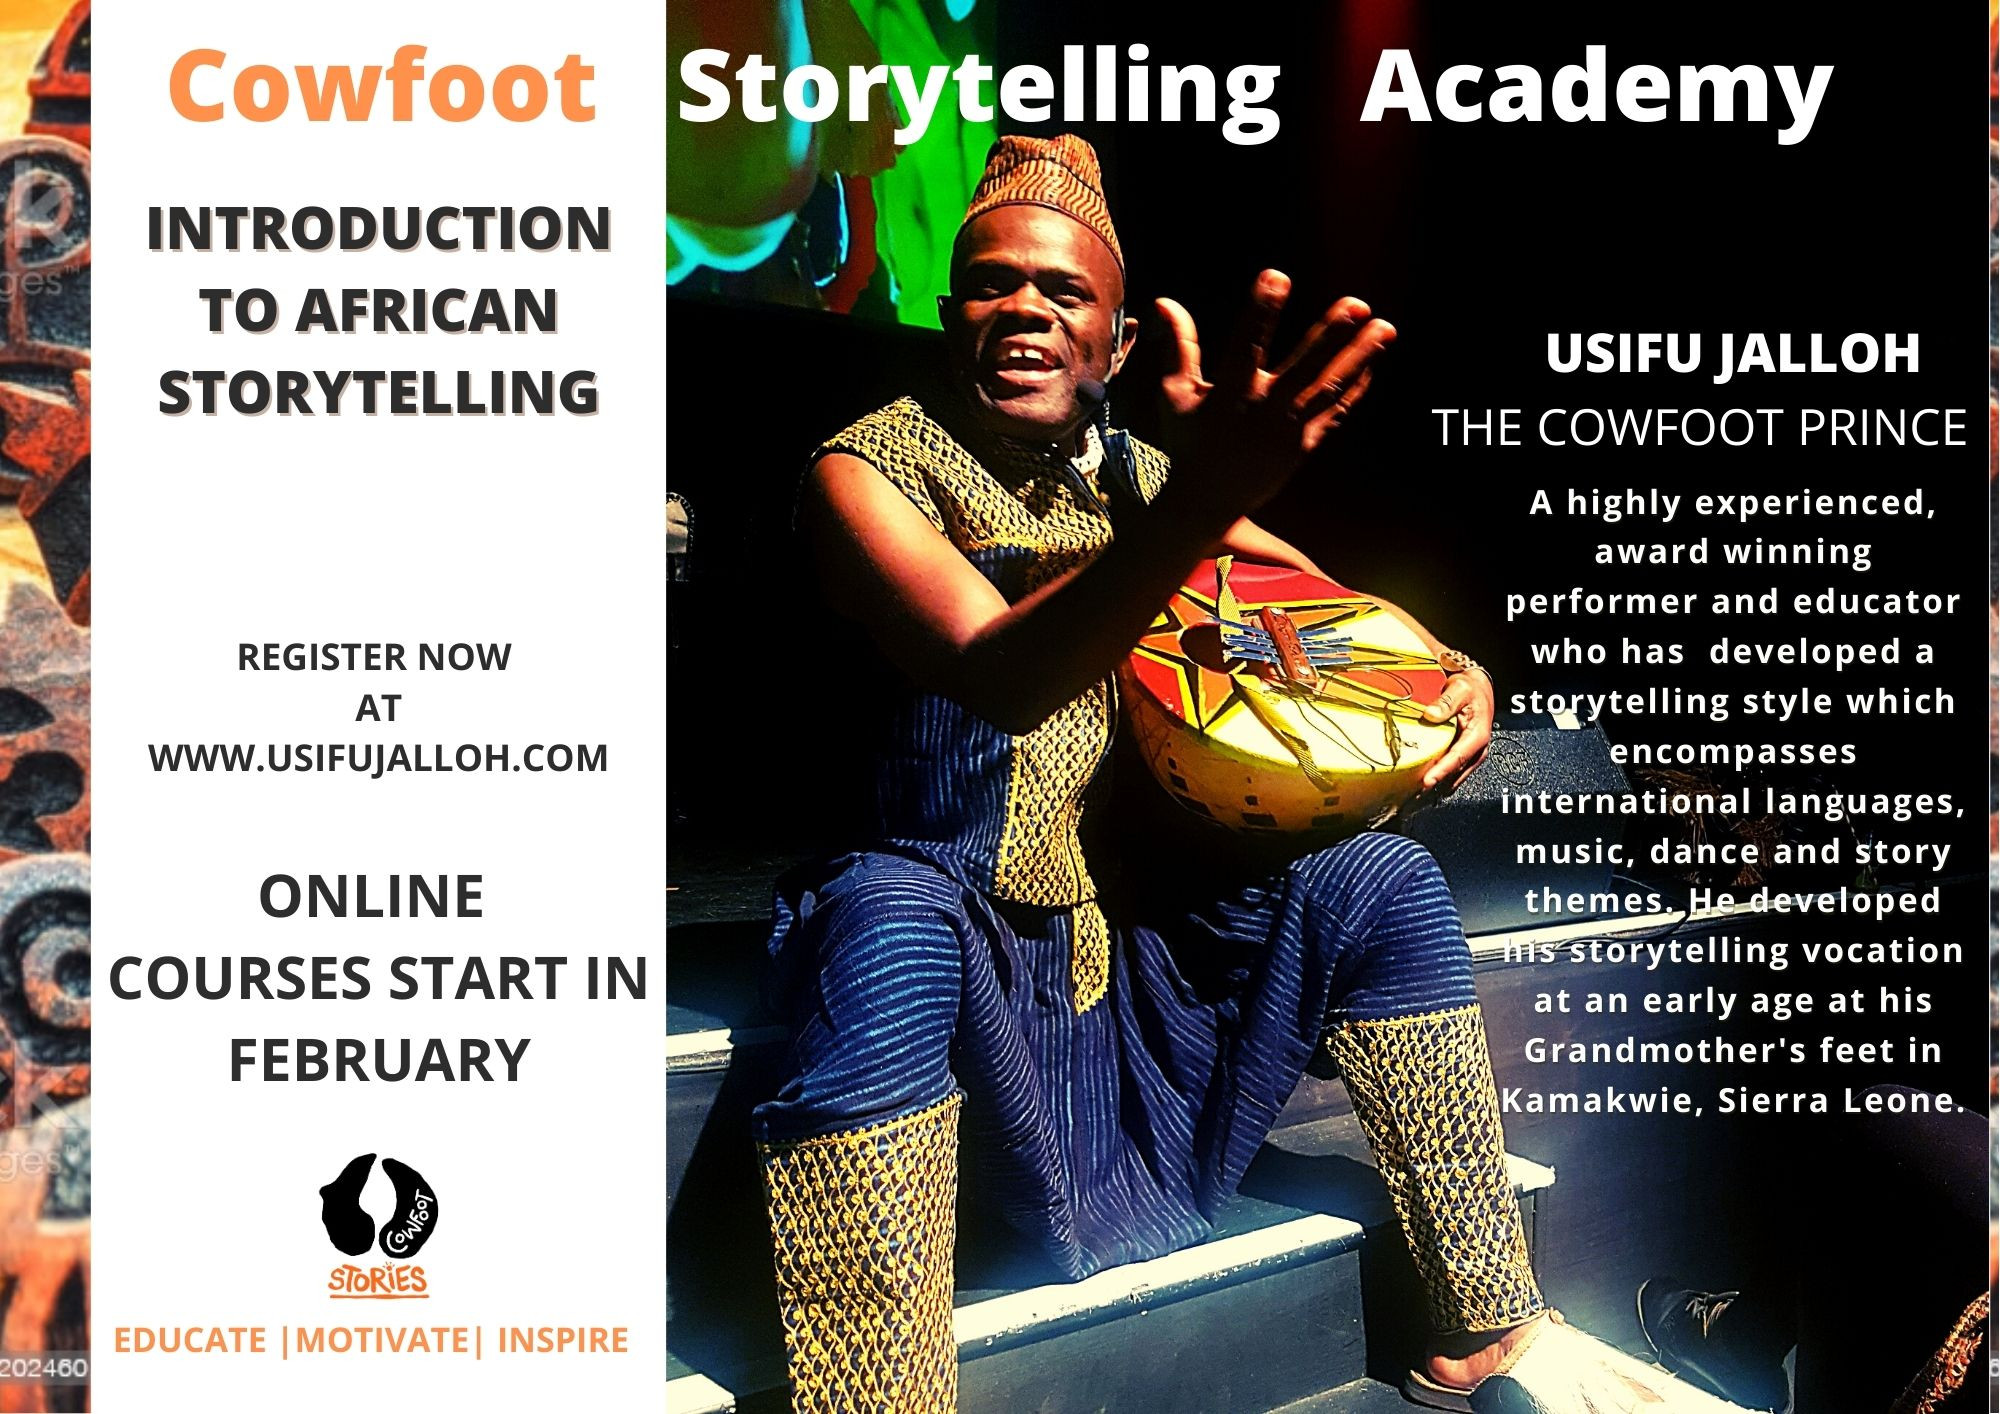 Introduction to African Storytelling